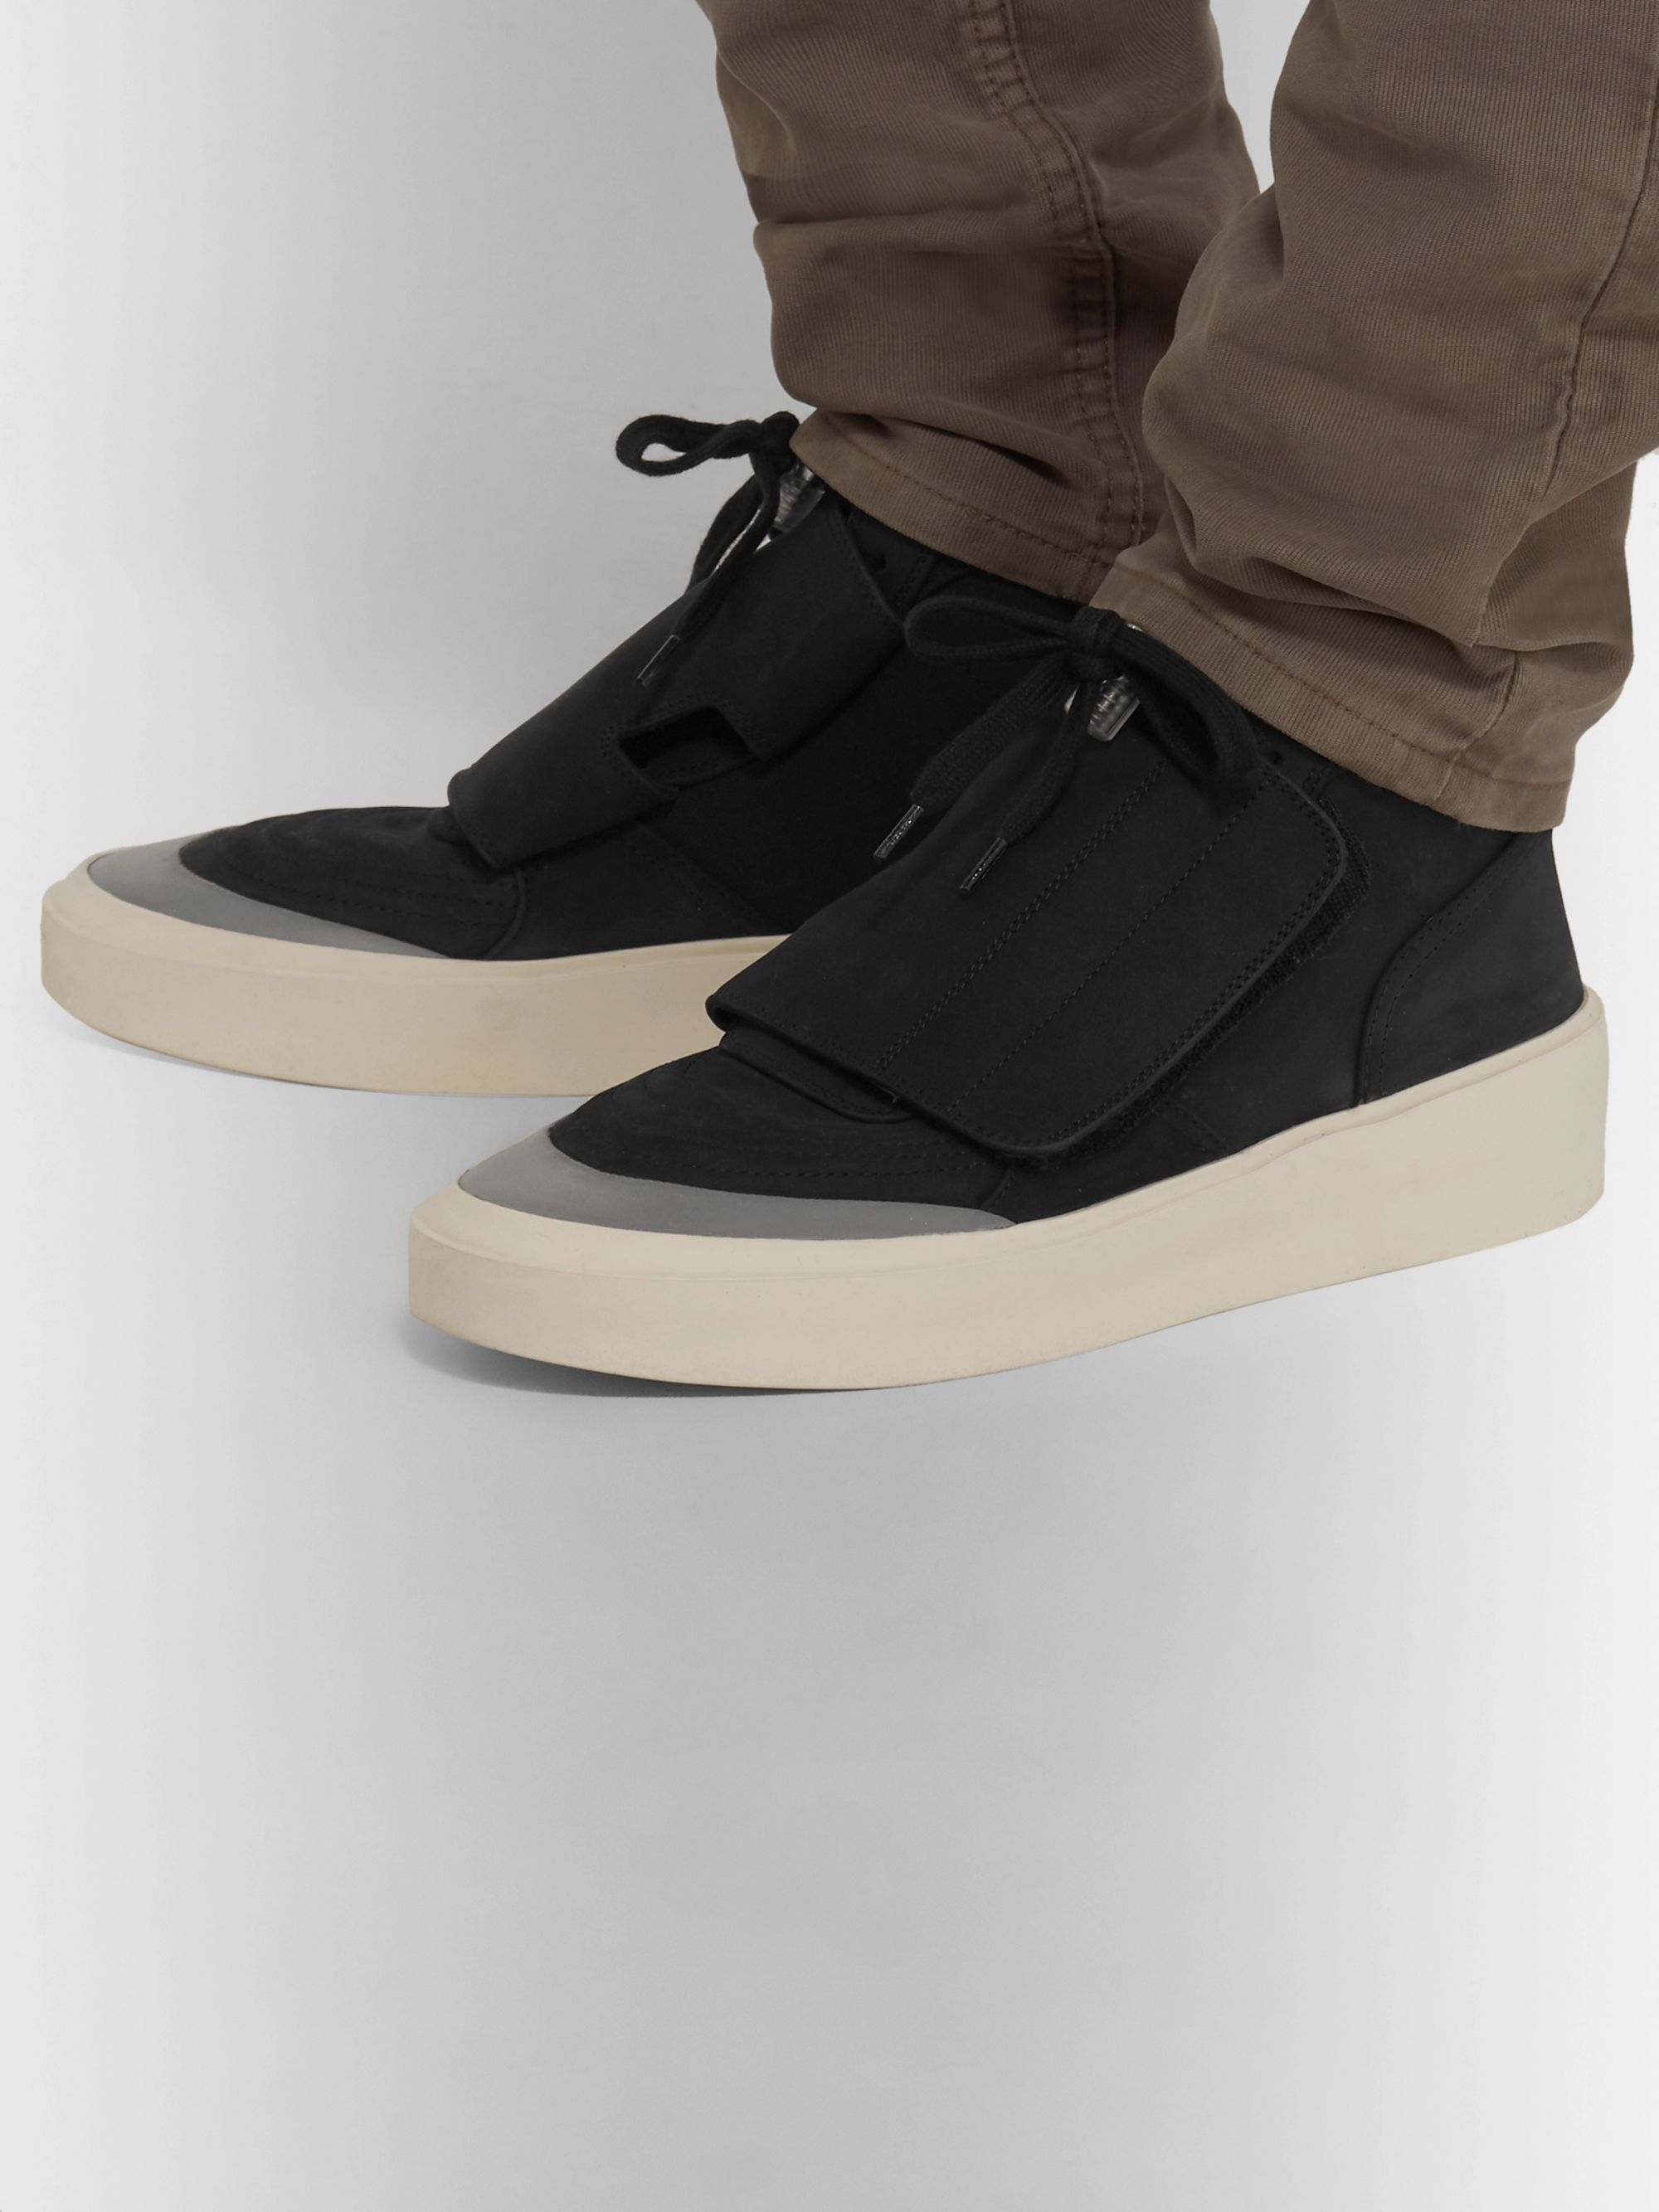 Fear of God Brushed-Suede High-Top Sneakers